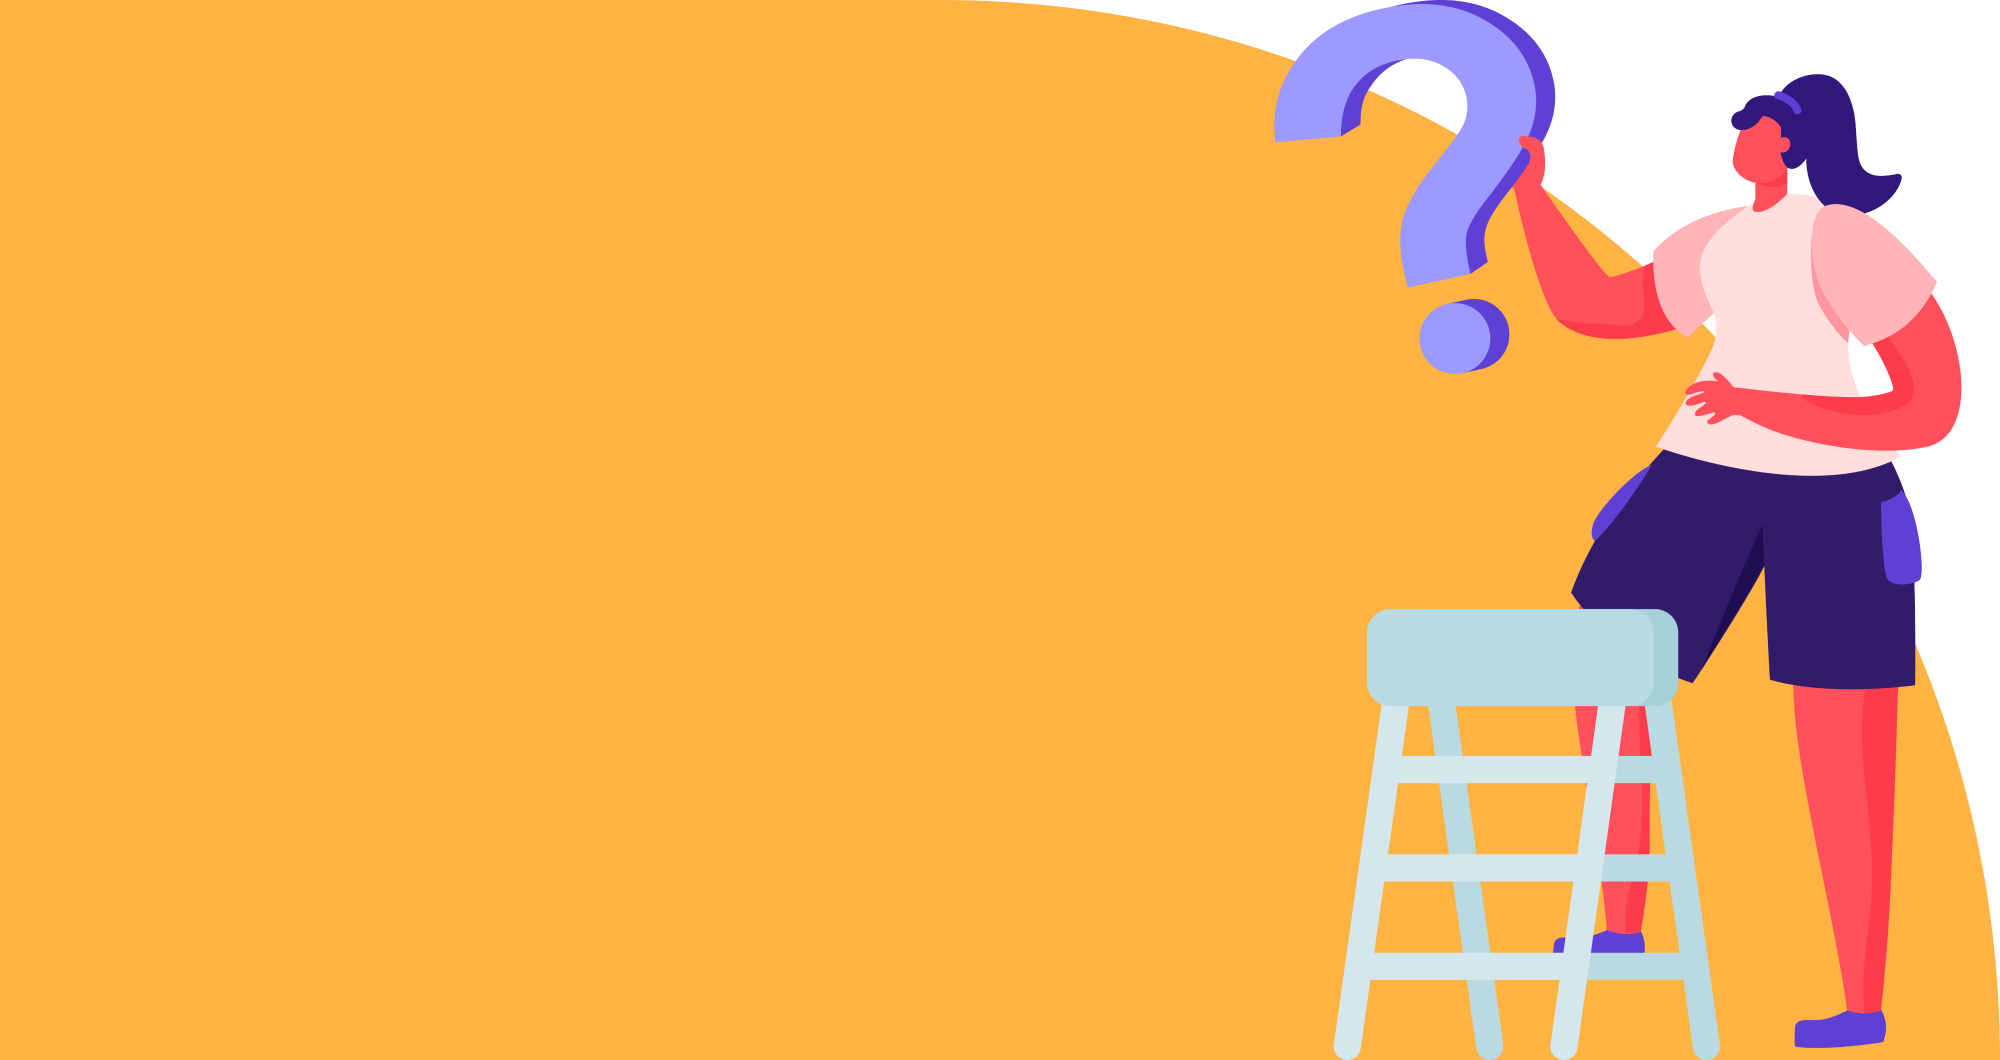 Image of a woman on a step ladder holding a question mark